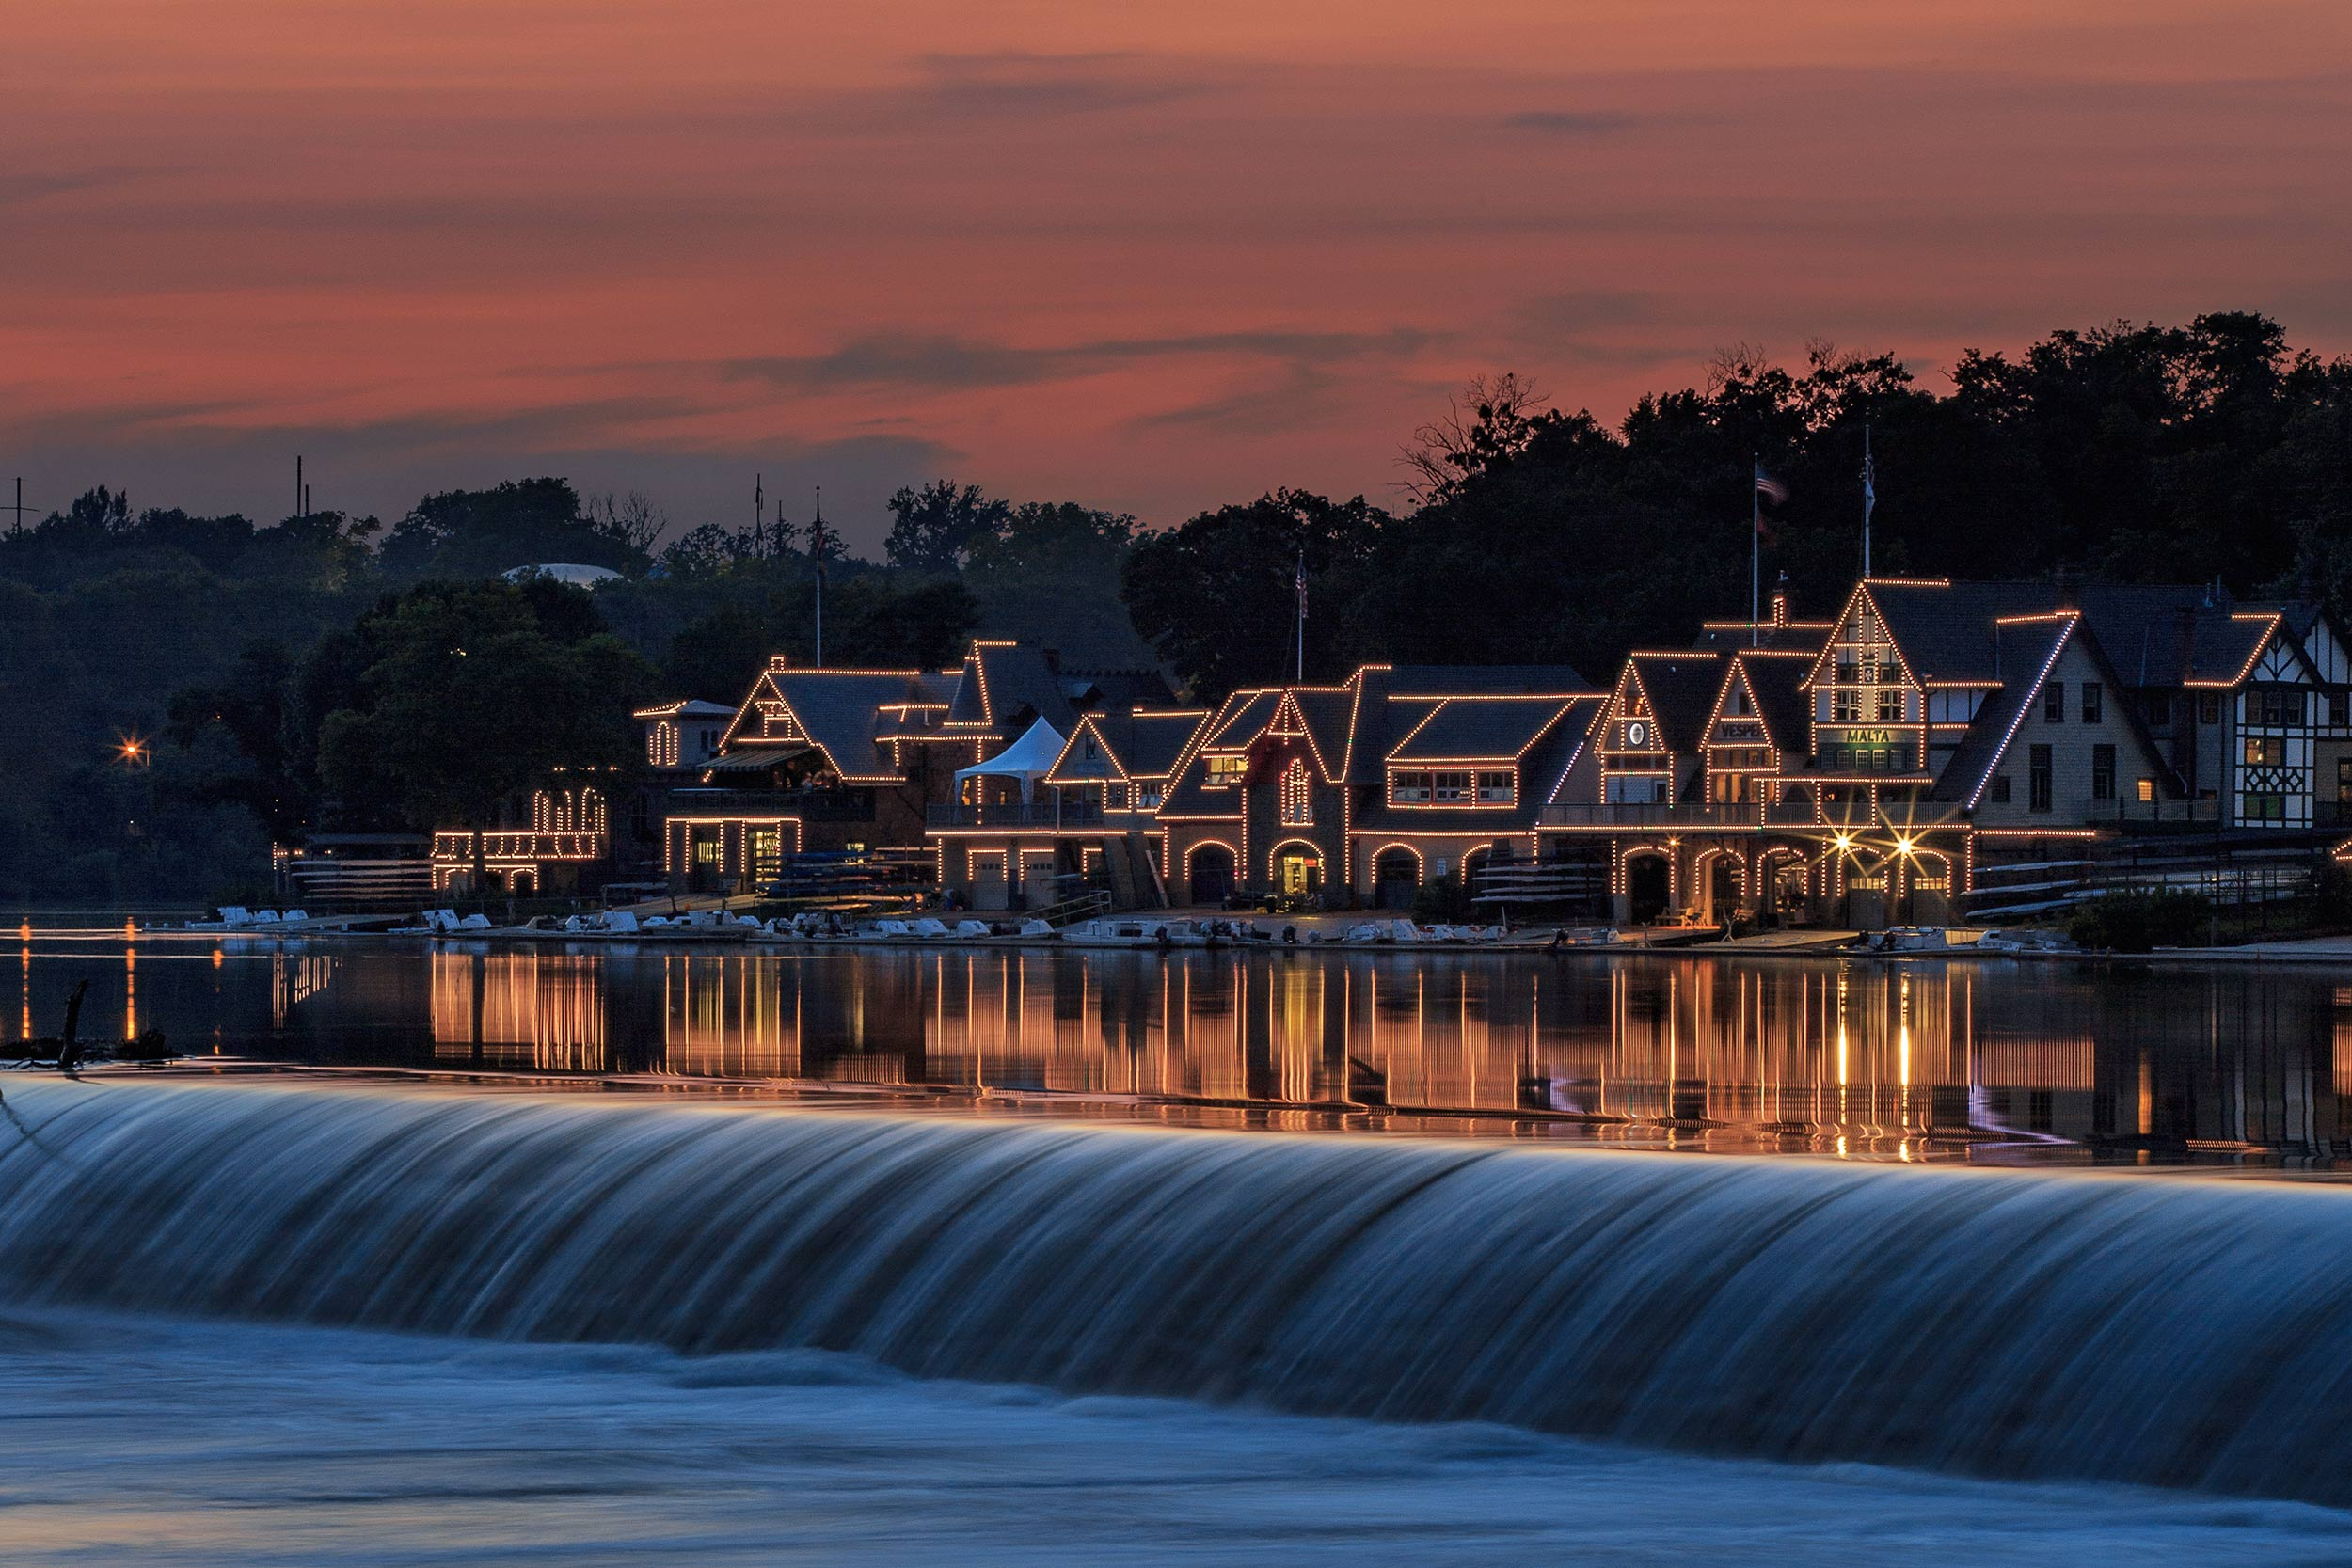 travel_photography_philadelphia_boathouse_row-4835